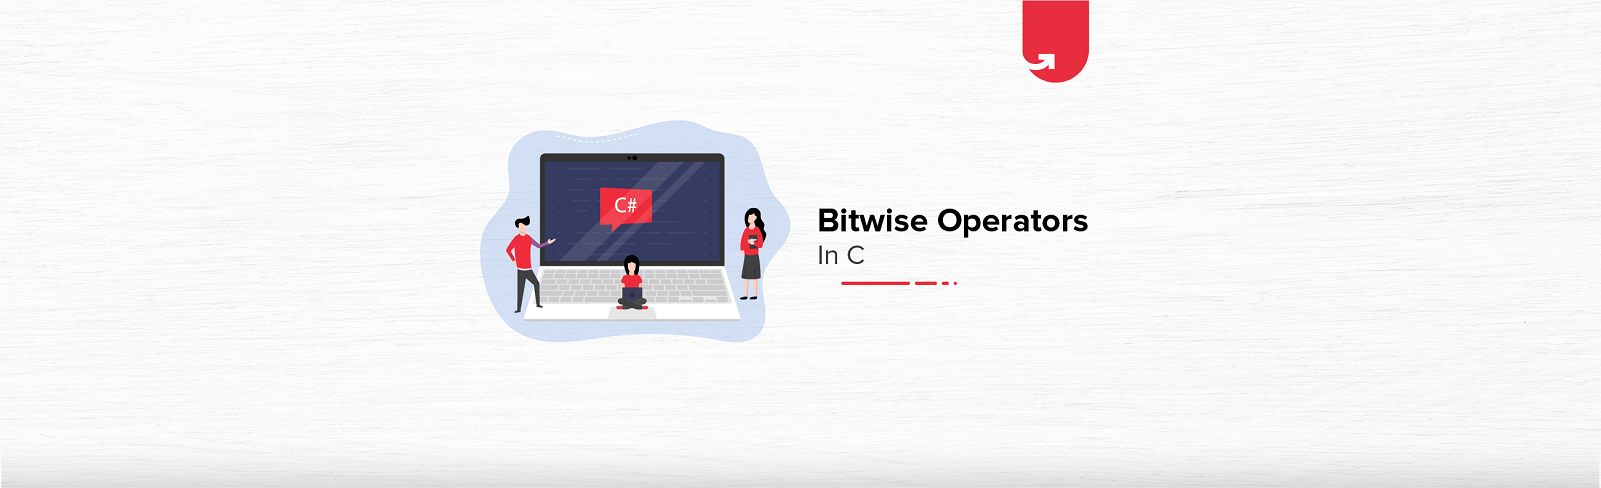 Bitwise Operators in C [With Coding Example]